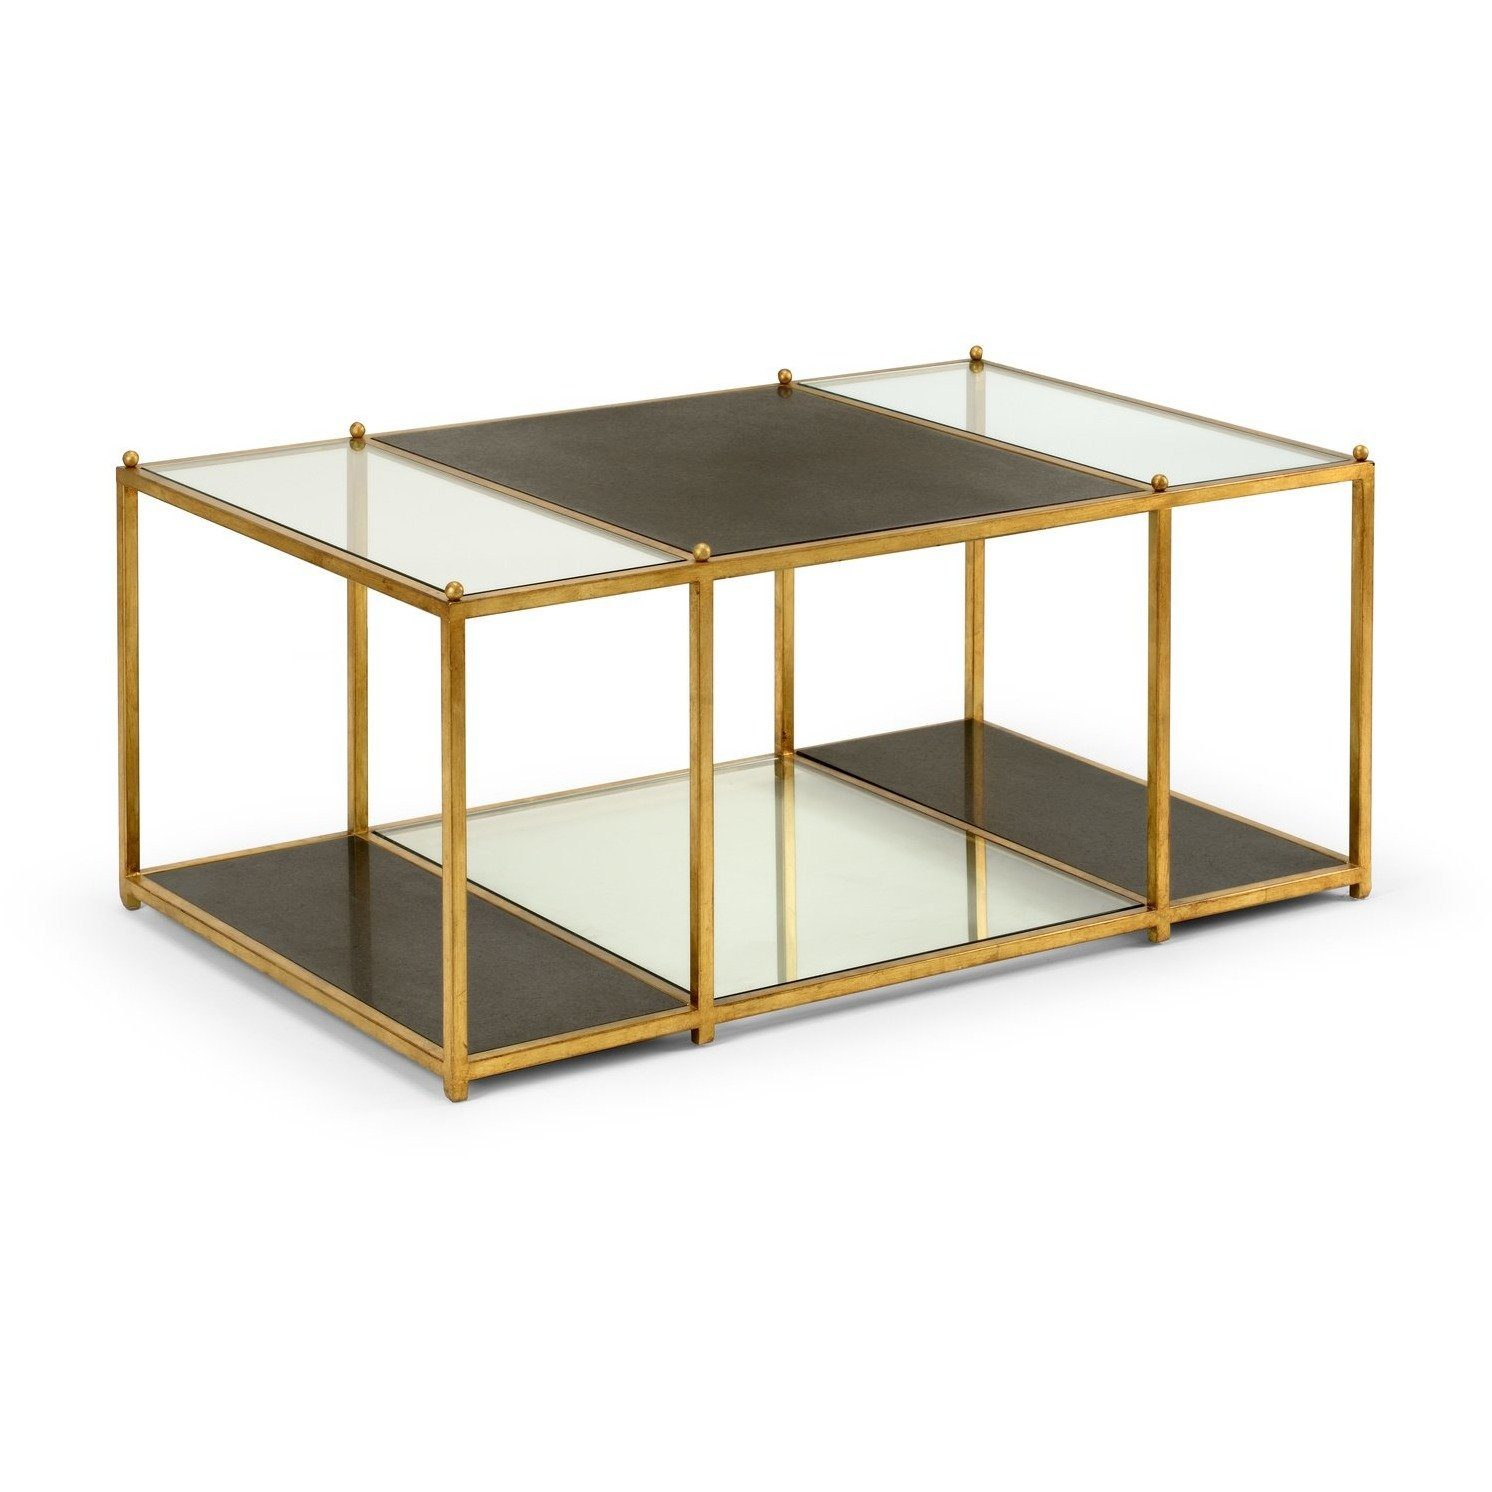 Chelsea House Directoire Coffee Table - Black 383378 - LOVECUP